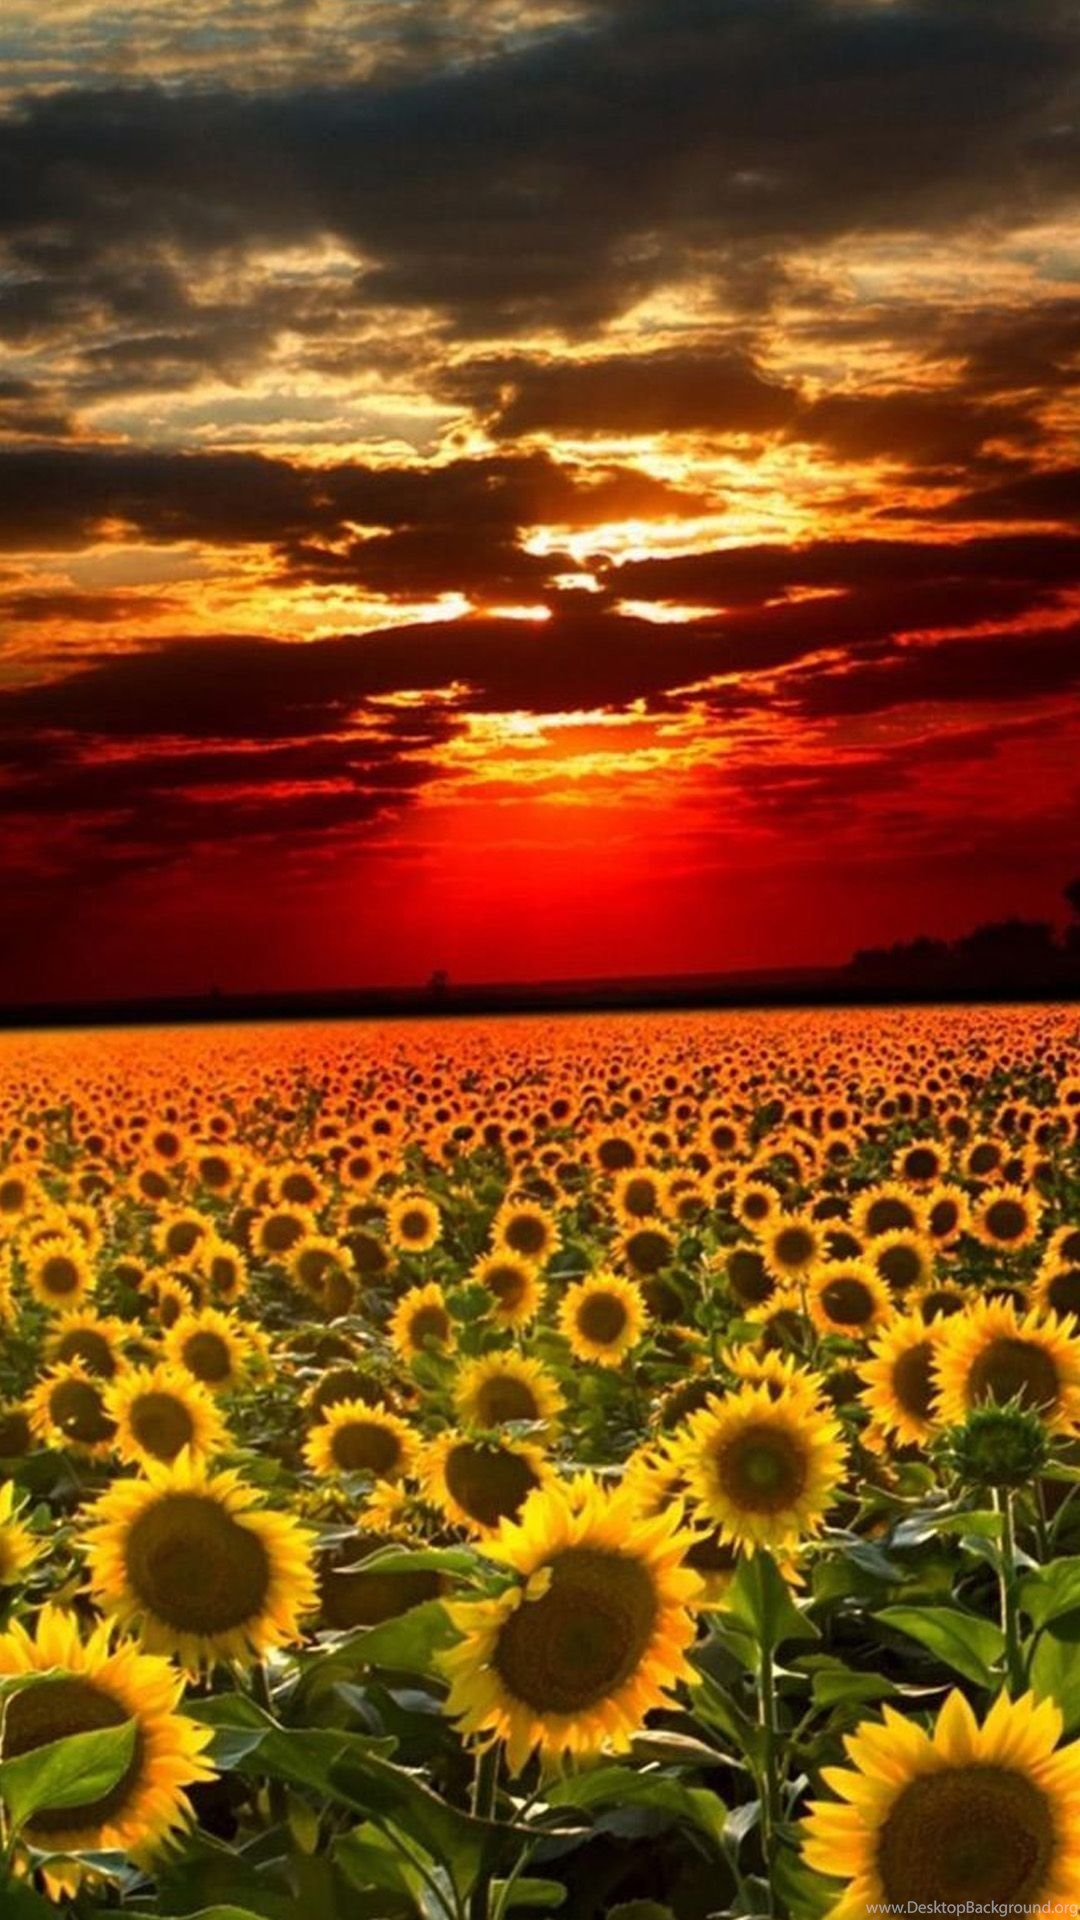 Sunflower Iphone Wallpapers For Laptops 10182 Hd Wallpapers Site